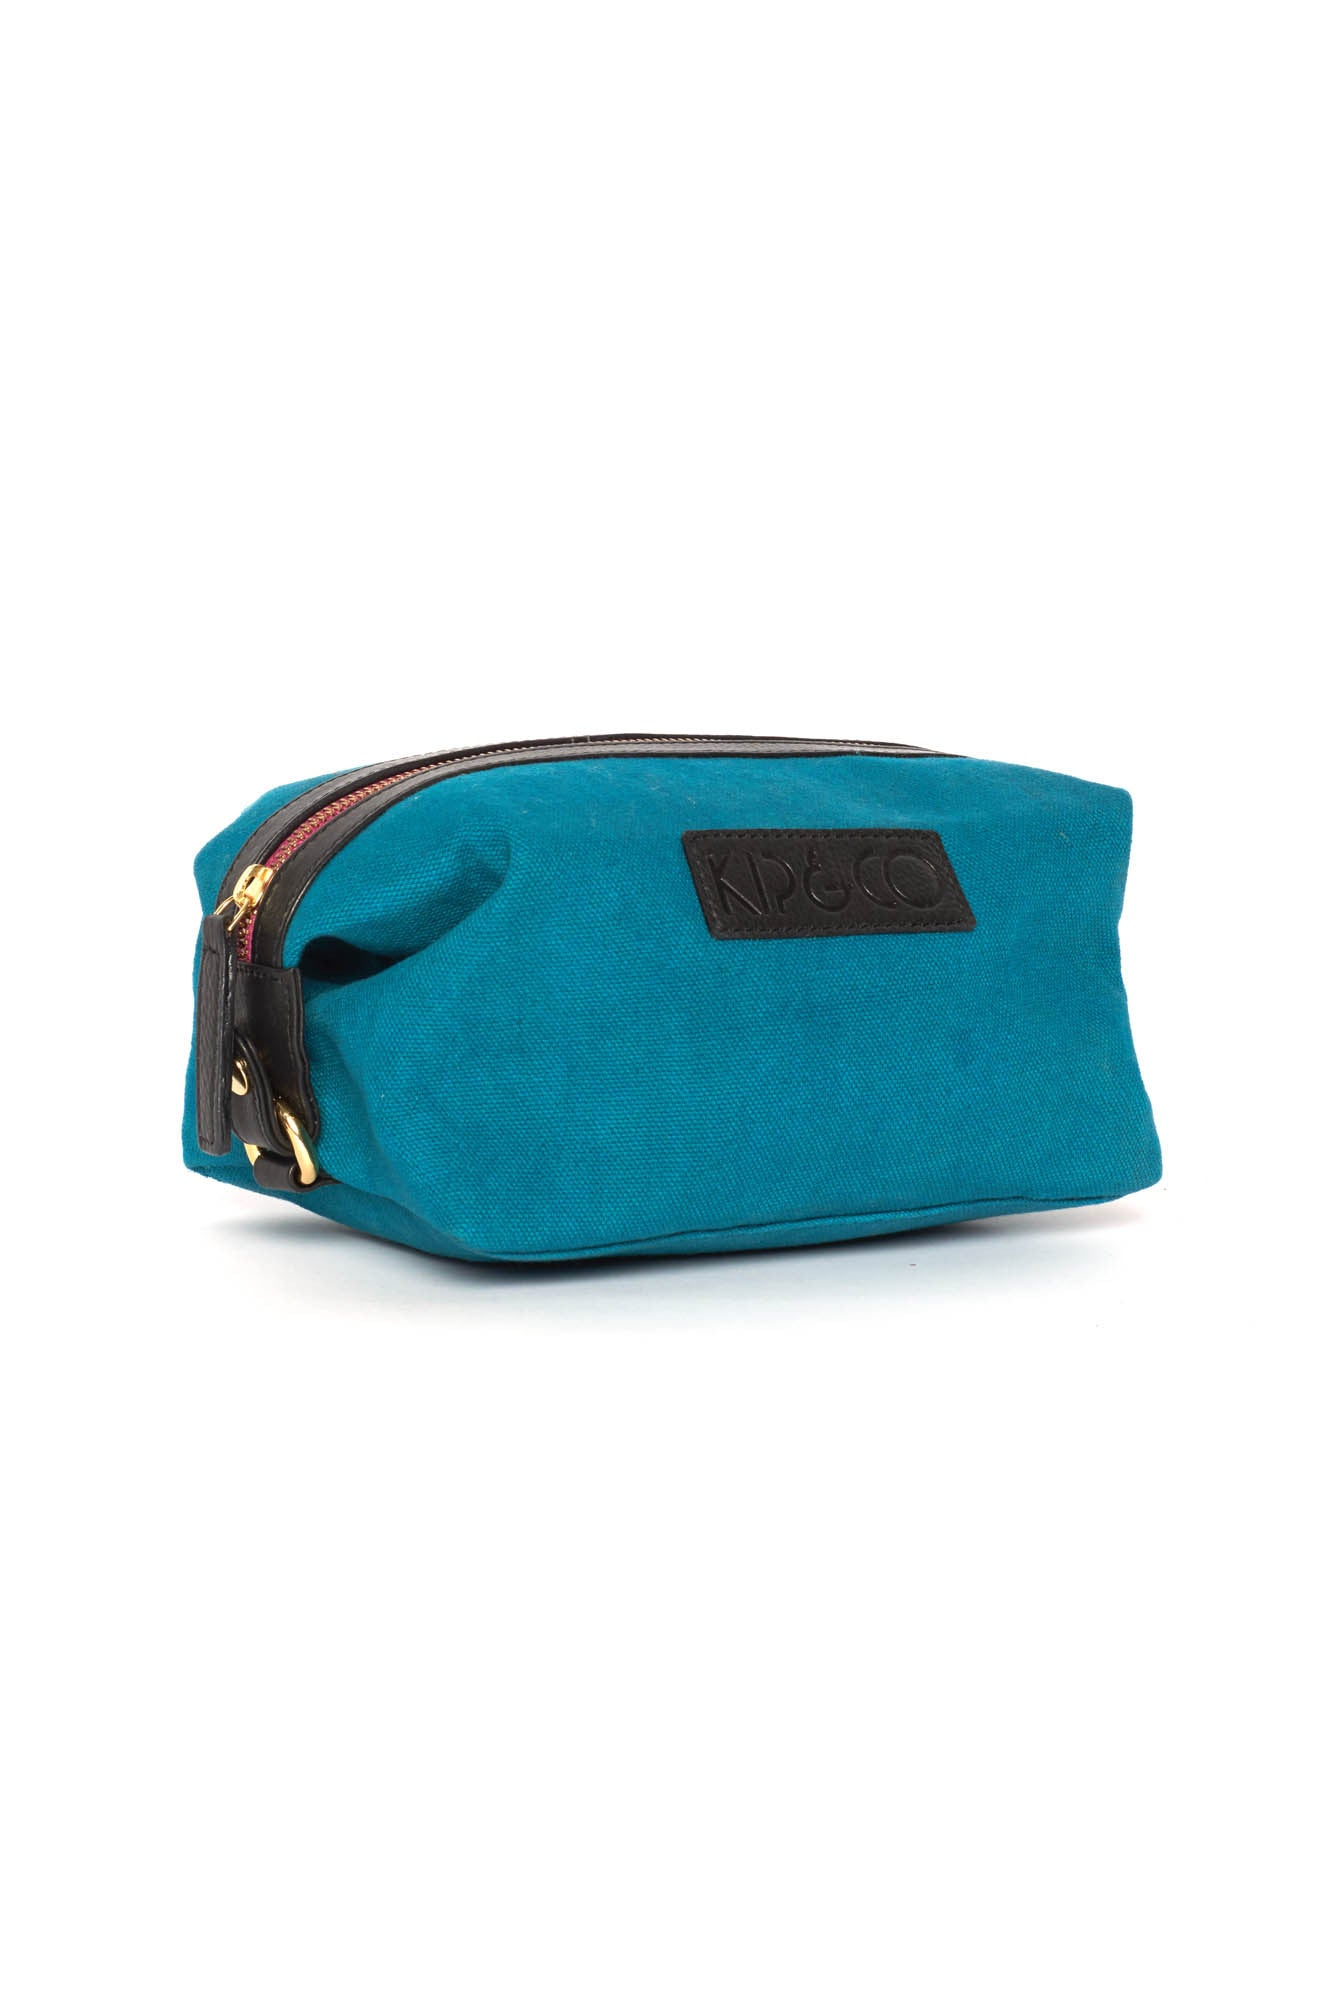 AW17 KIP&CO TEAL TOILETRY BAG